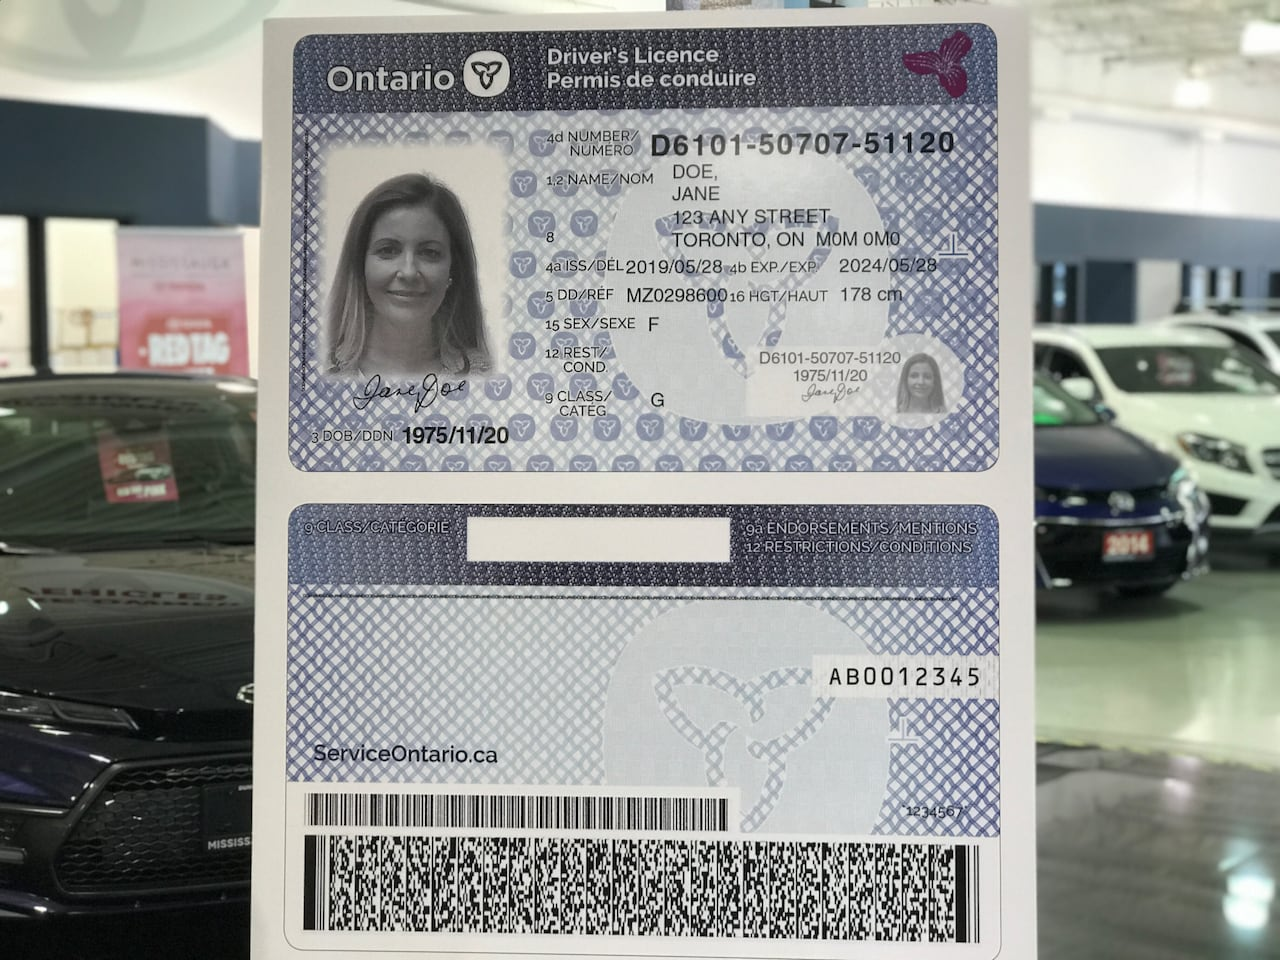 Ford government reveals updated driver's licence card to